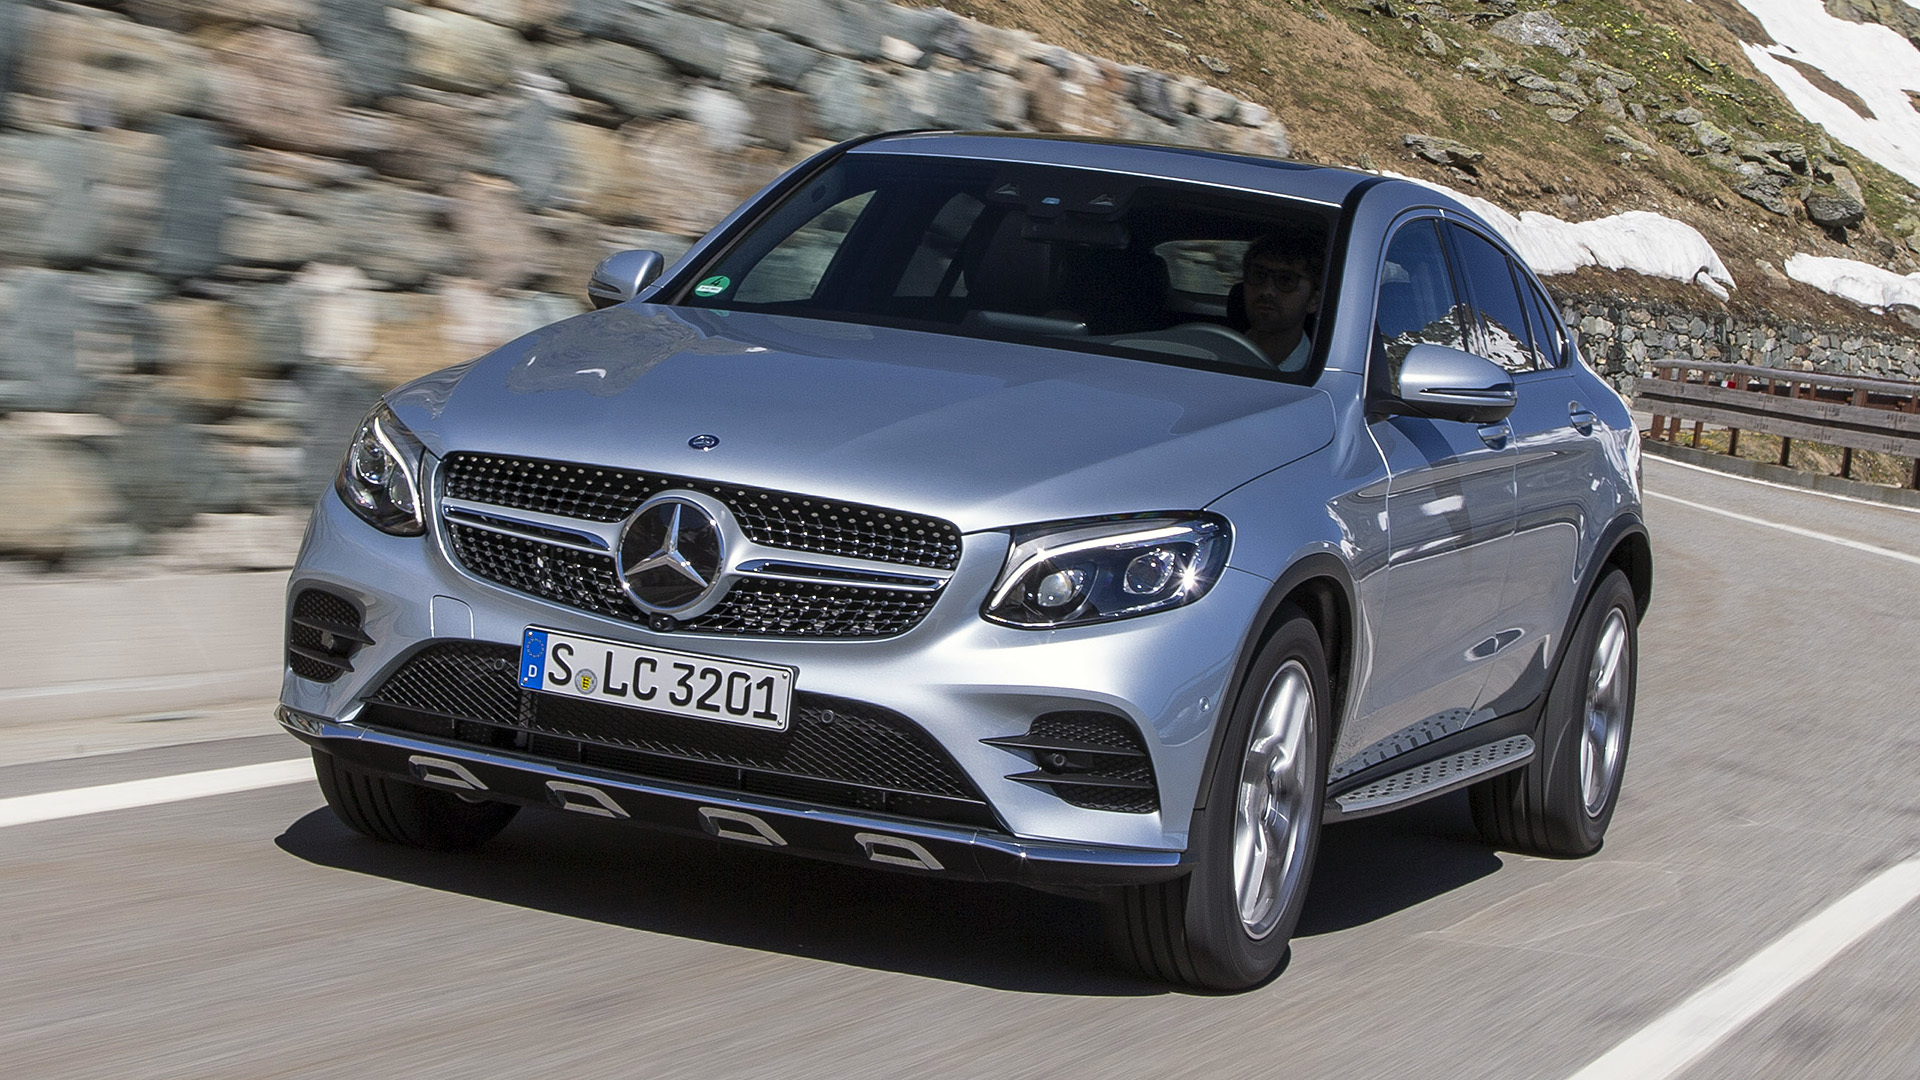 2017 mercedes-benz glc300 coupe: first drive photo gallery - autoblog